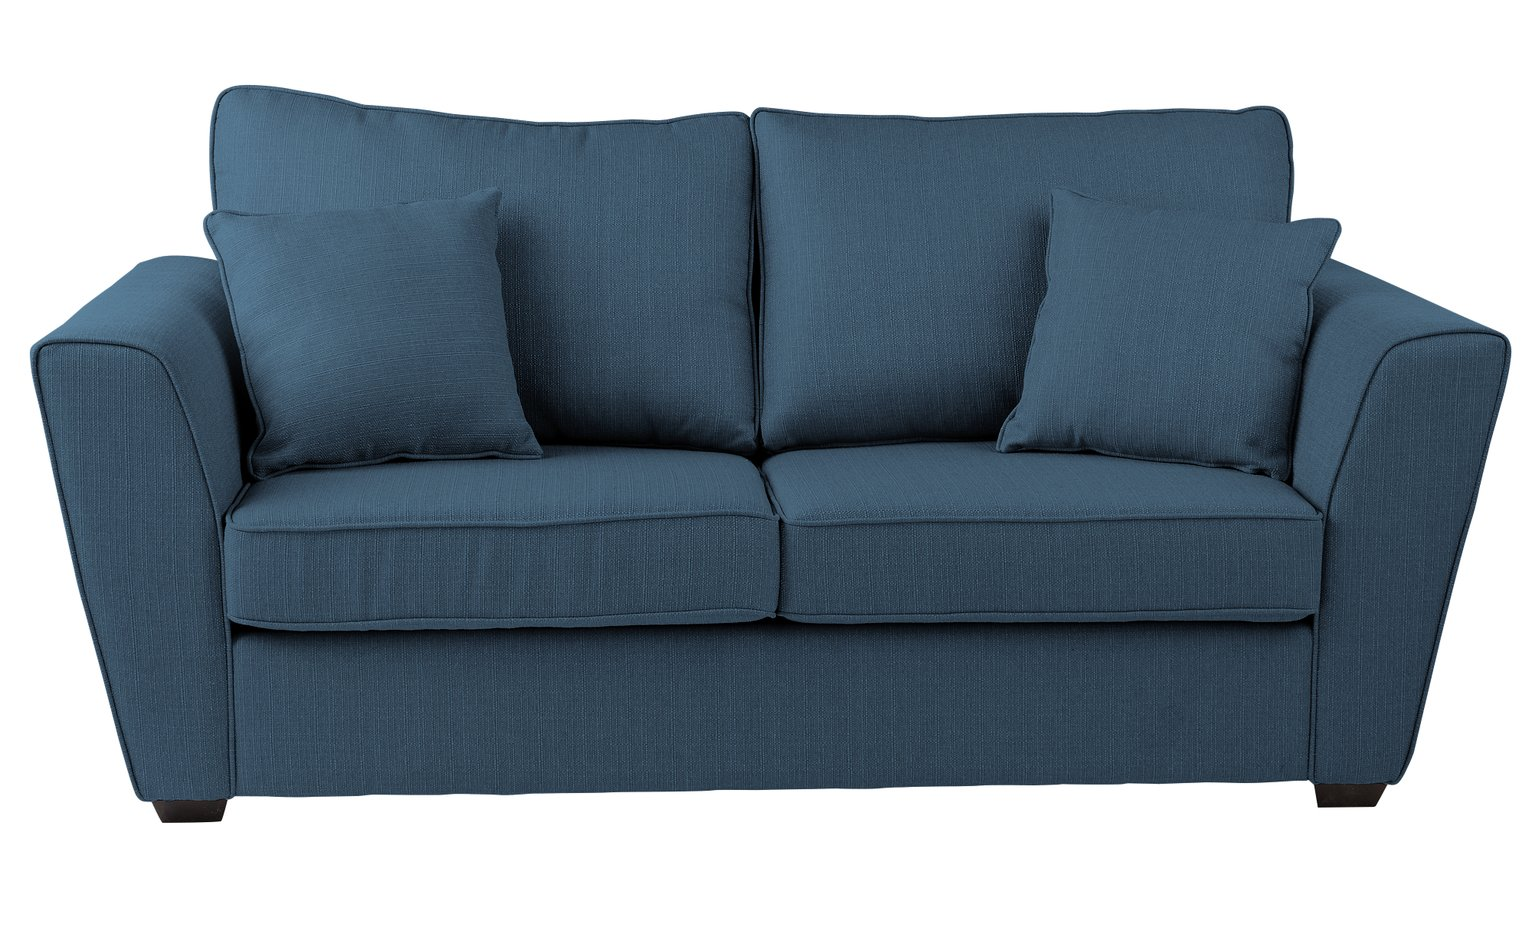 pink sofa browse uk comfy mexican tutorial beds chair futons bed settees argos home renley 2 seater fabric blue